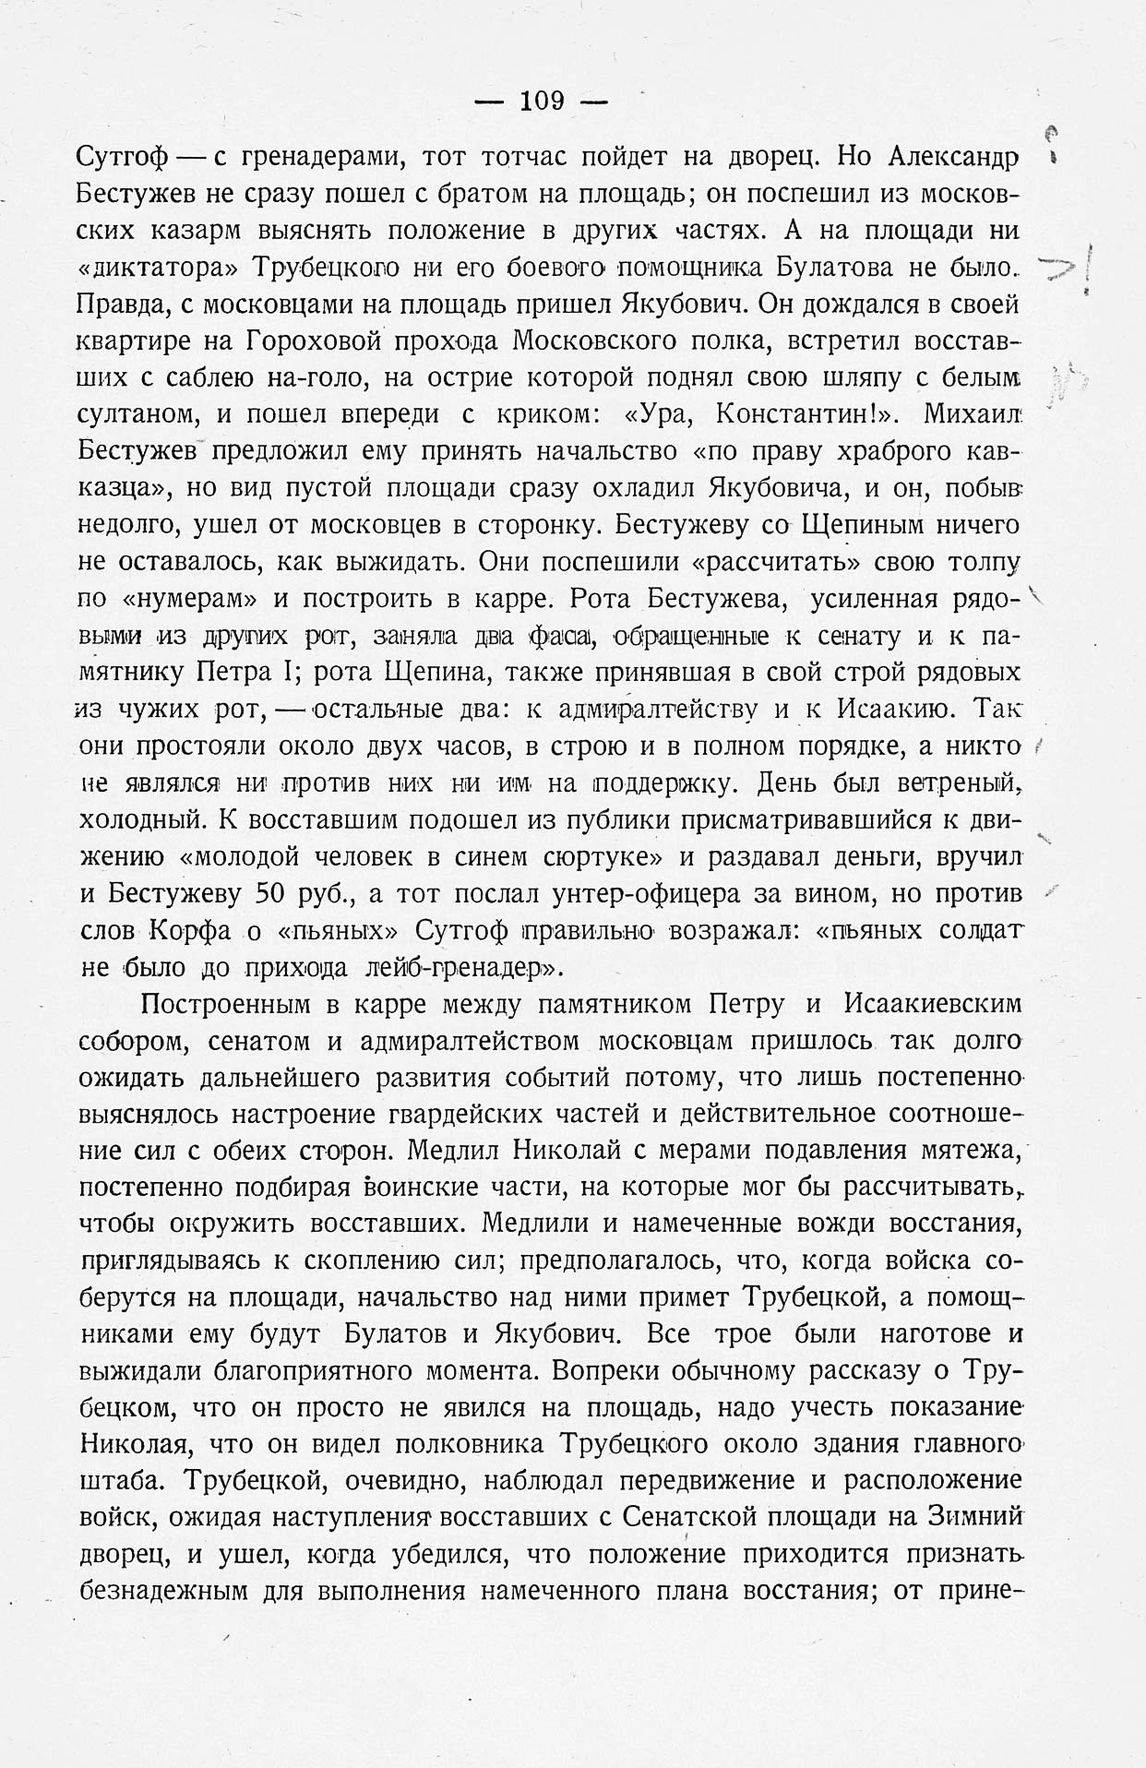 http://elib.shpl.ru/pages/566006/zooms/7